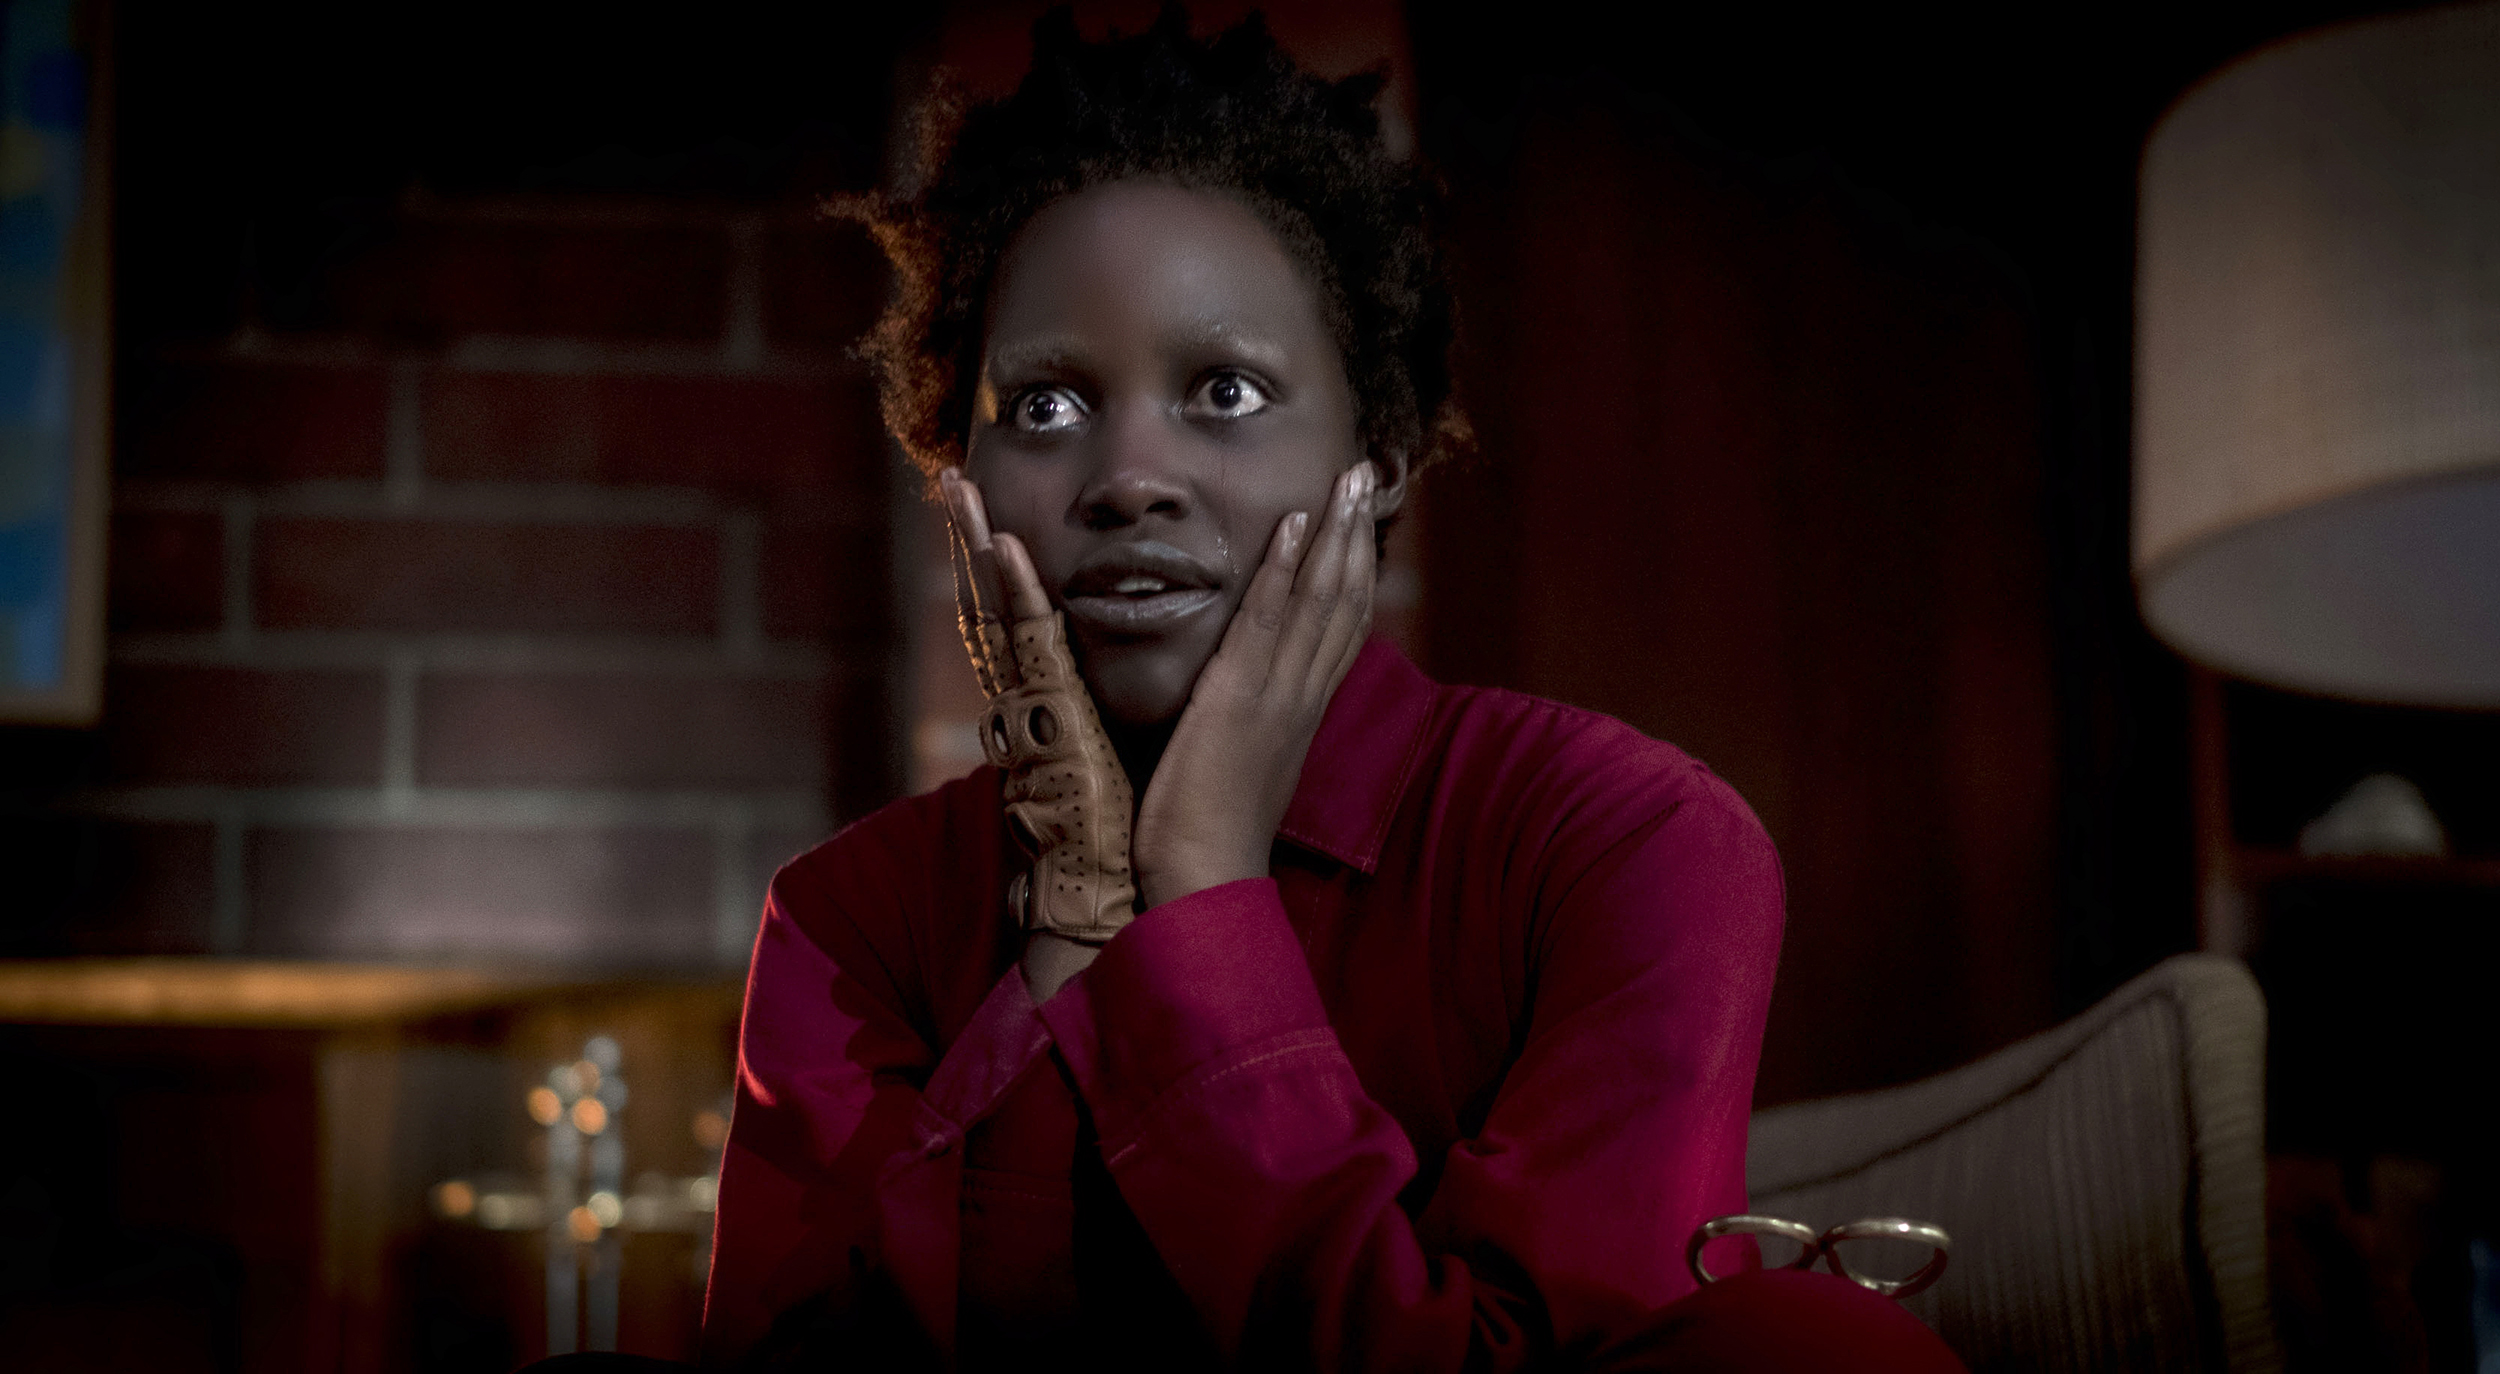 Jordan Peele's 'Us' is everything horror fans want a movie to be:  disturbing, beautiful and impossible to forget